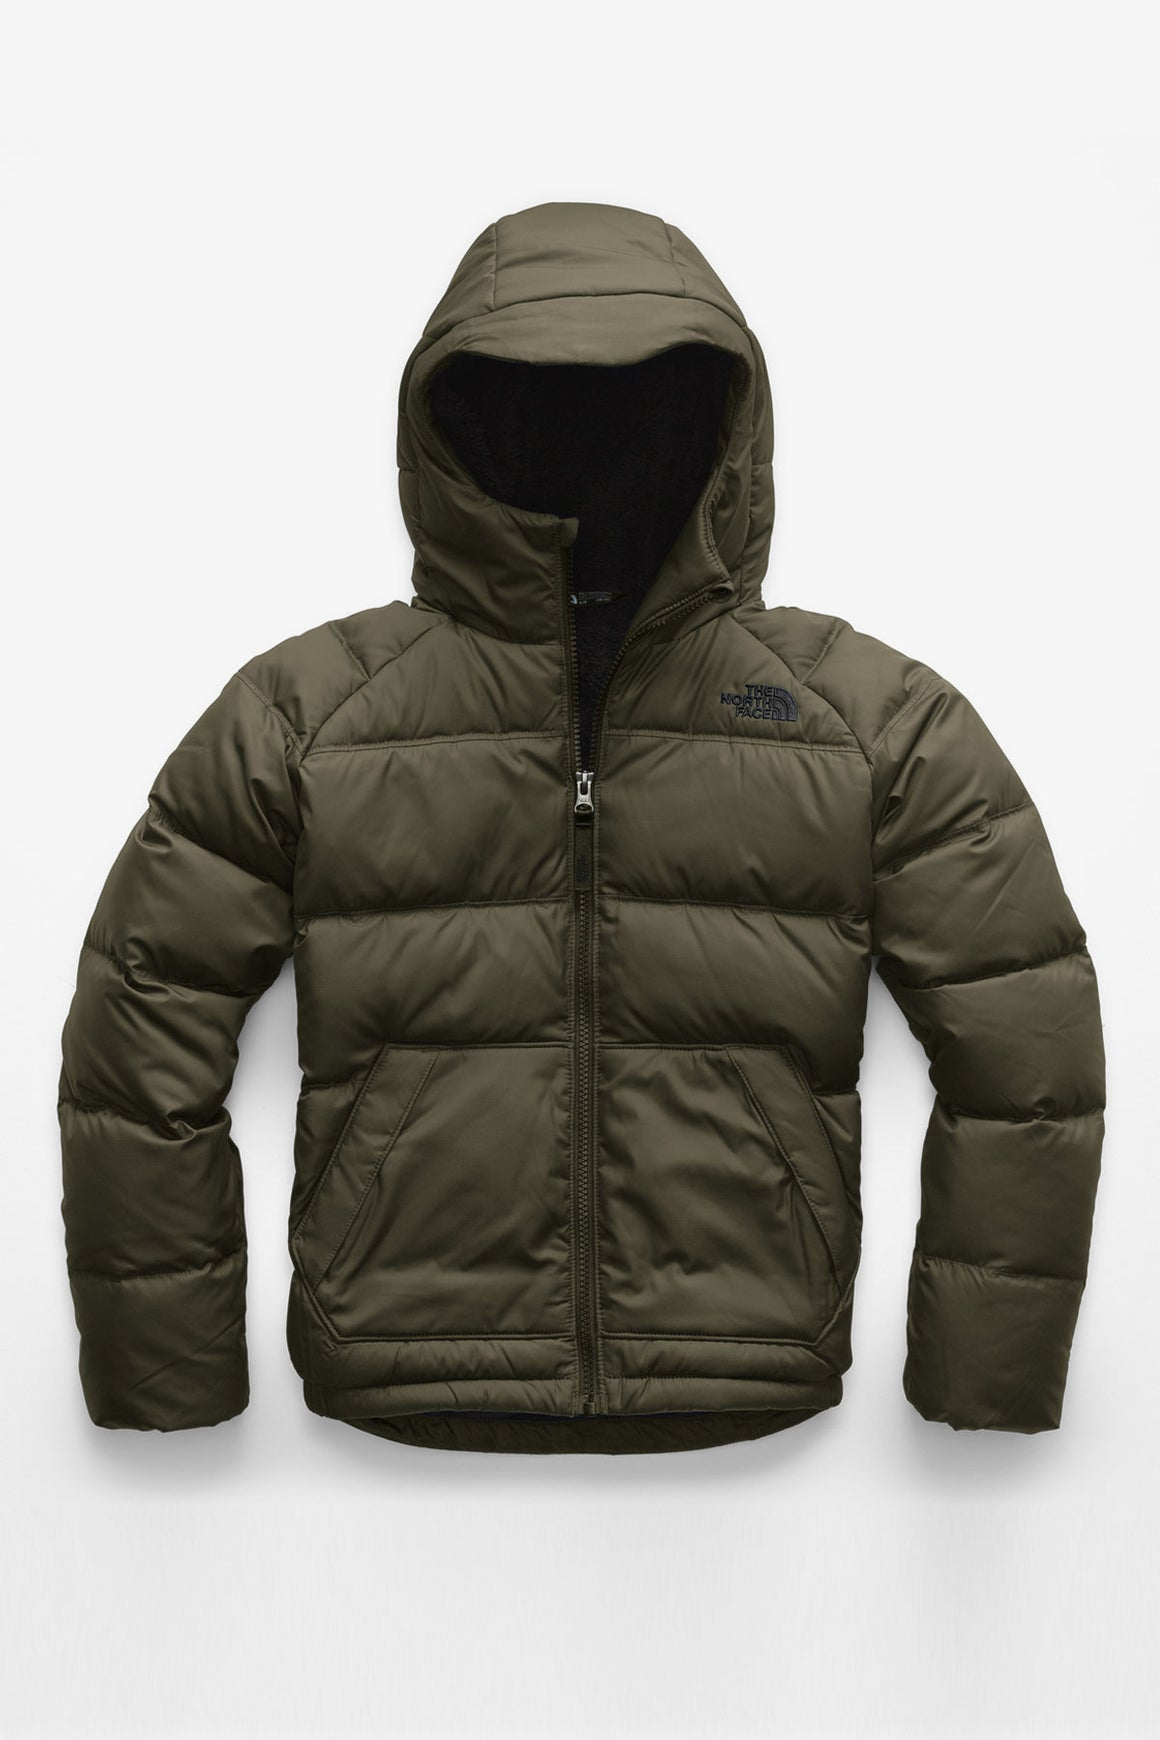 The North Face Boys 2.0 Moondoggy Jacket - Taupe Green